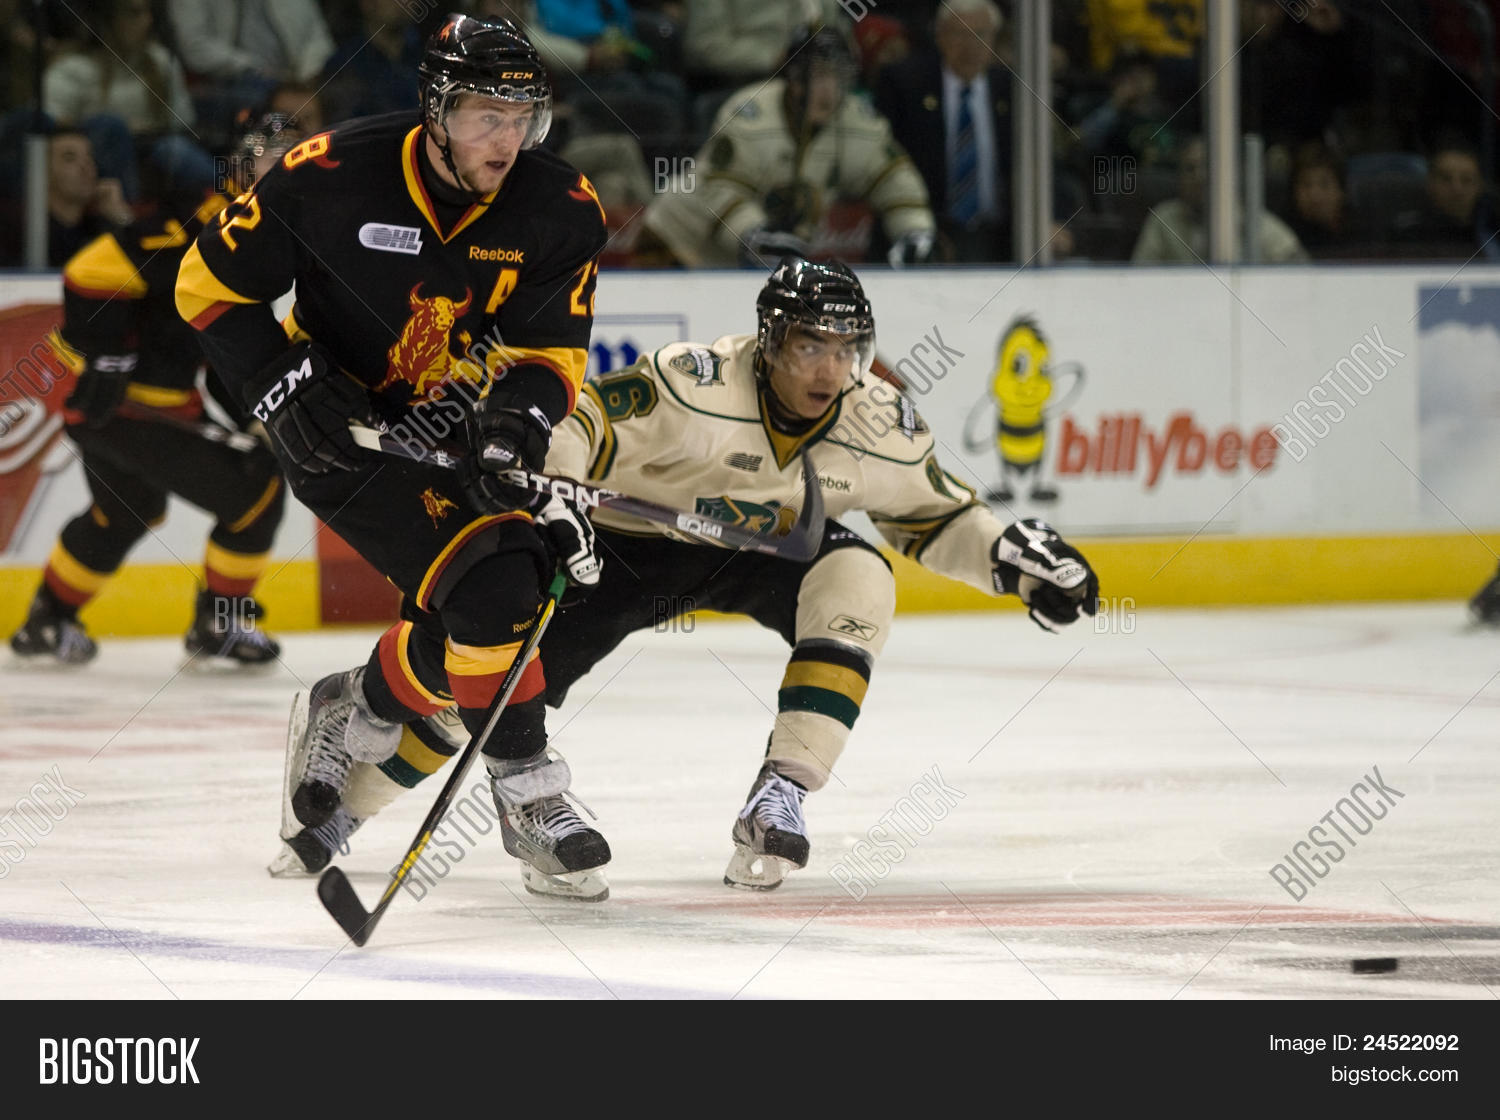 Ontario Hockey League Image Photo Free Trial Bigstock